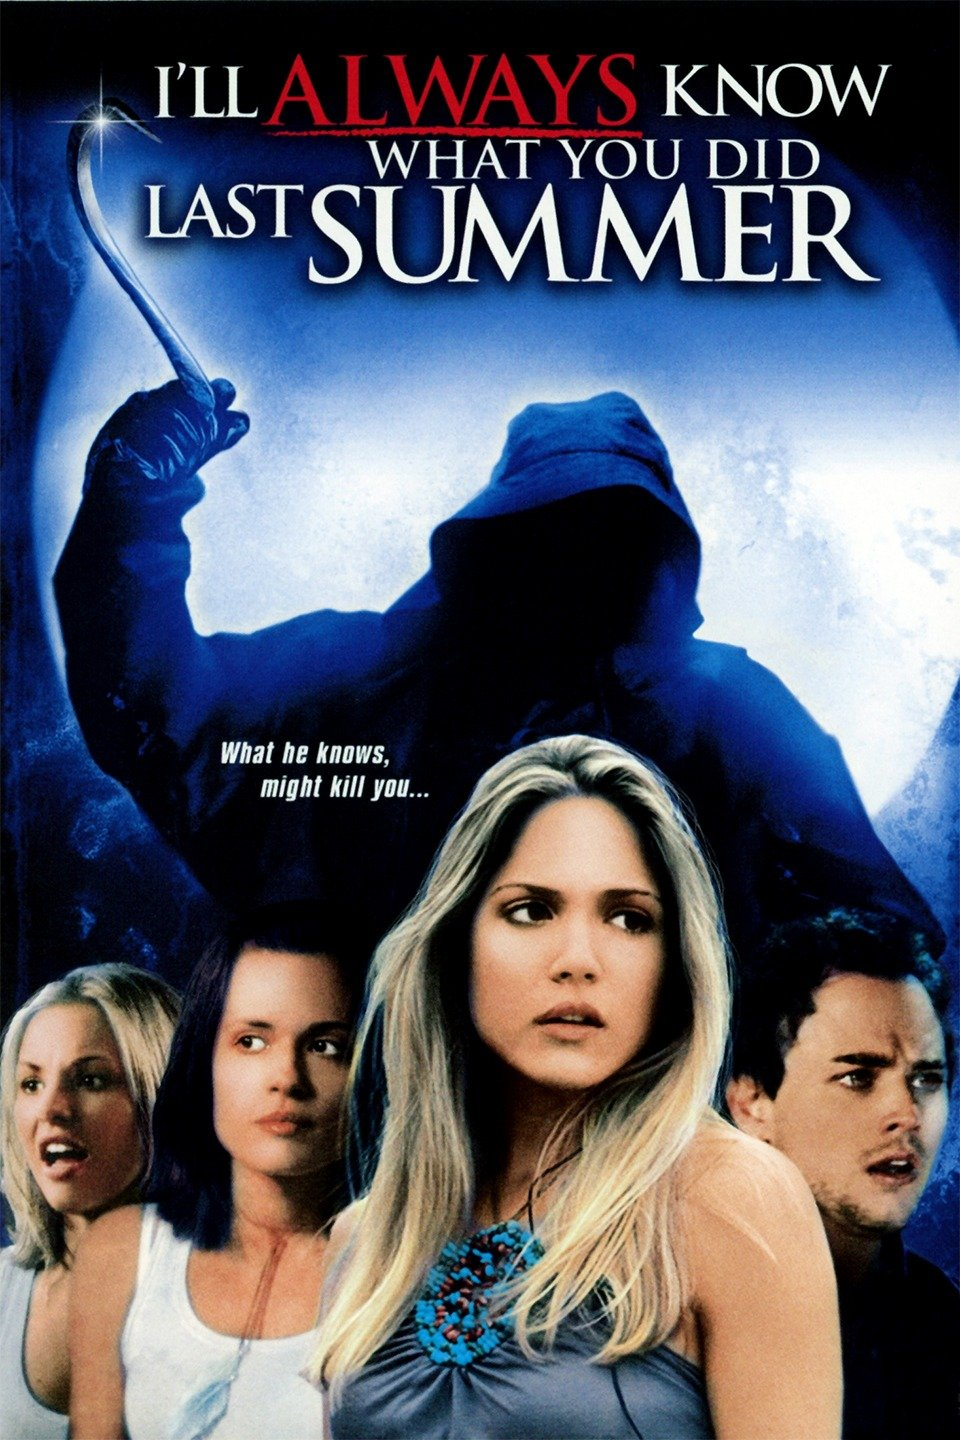 I'll Always Know What You Did Last Summer 2006 WEBRip 720p 980MB [Hindi – English] AC3 MKV